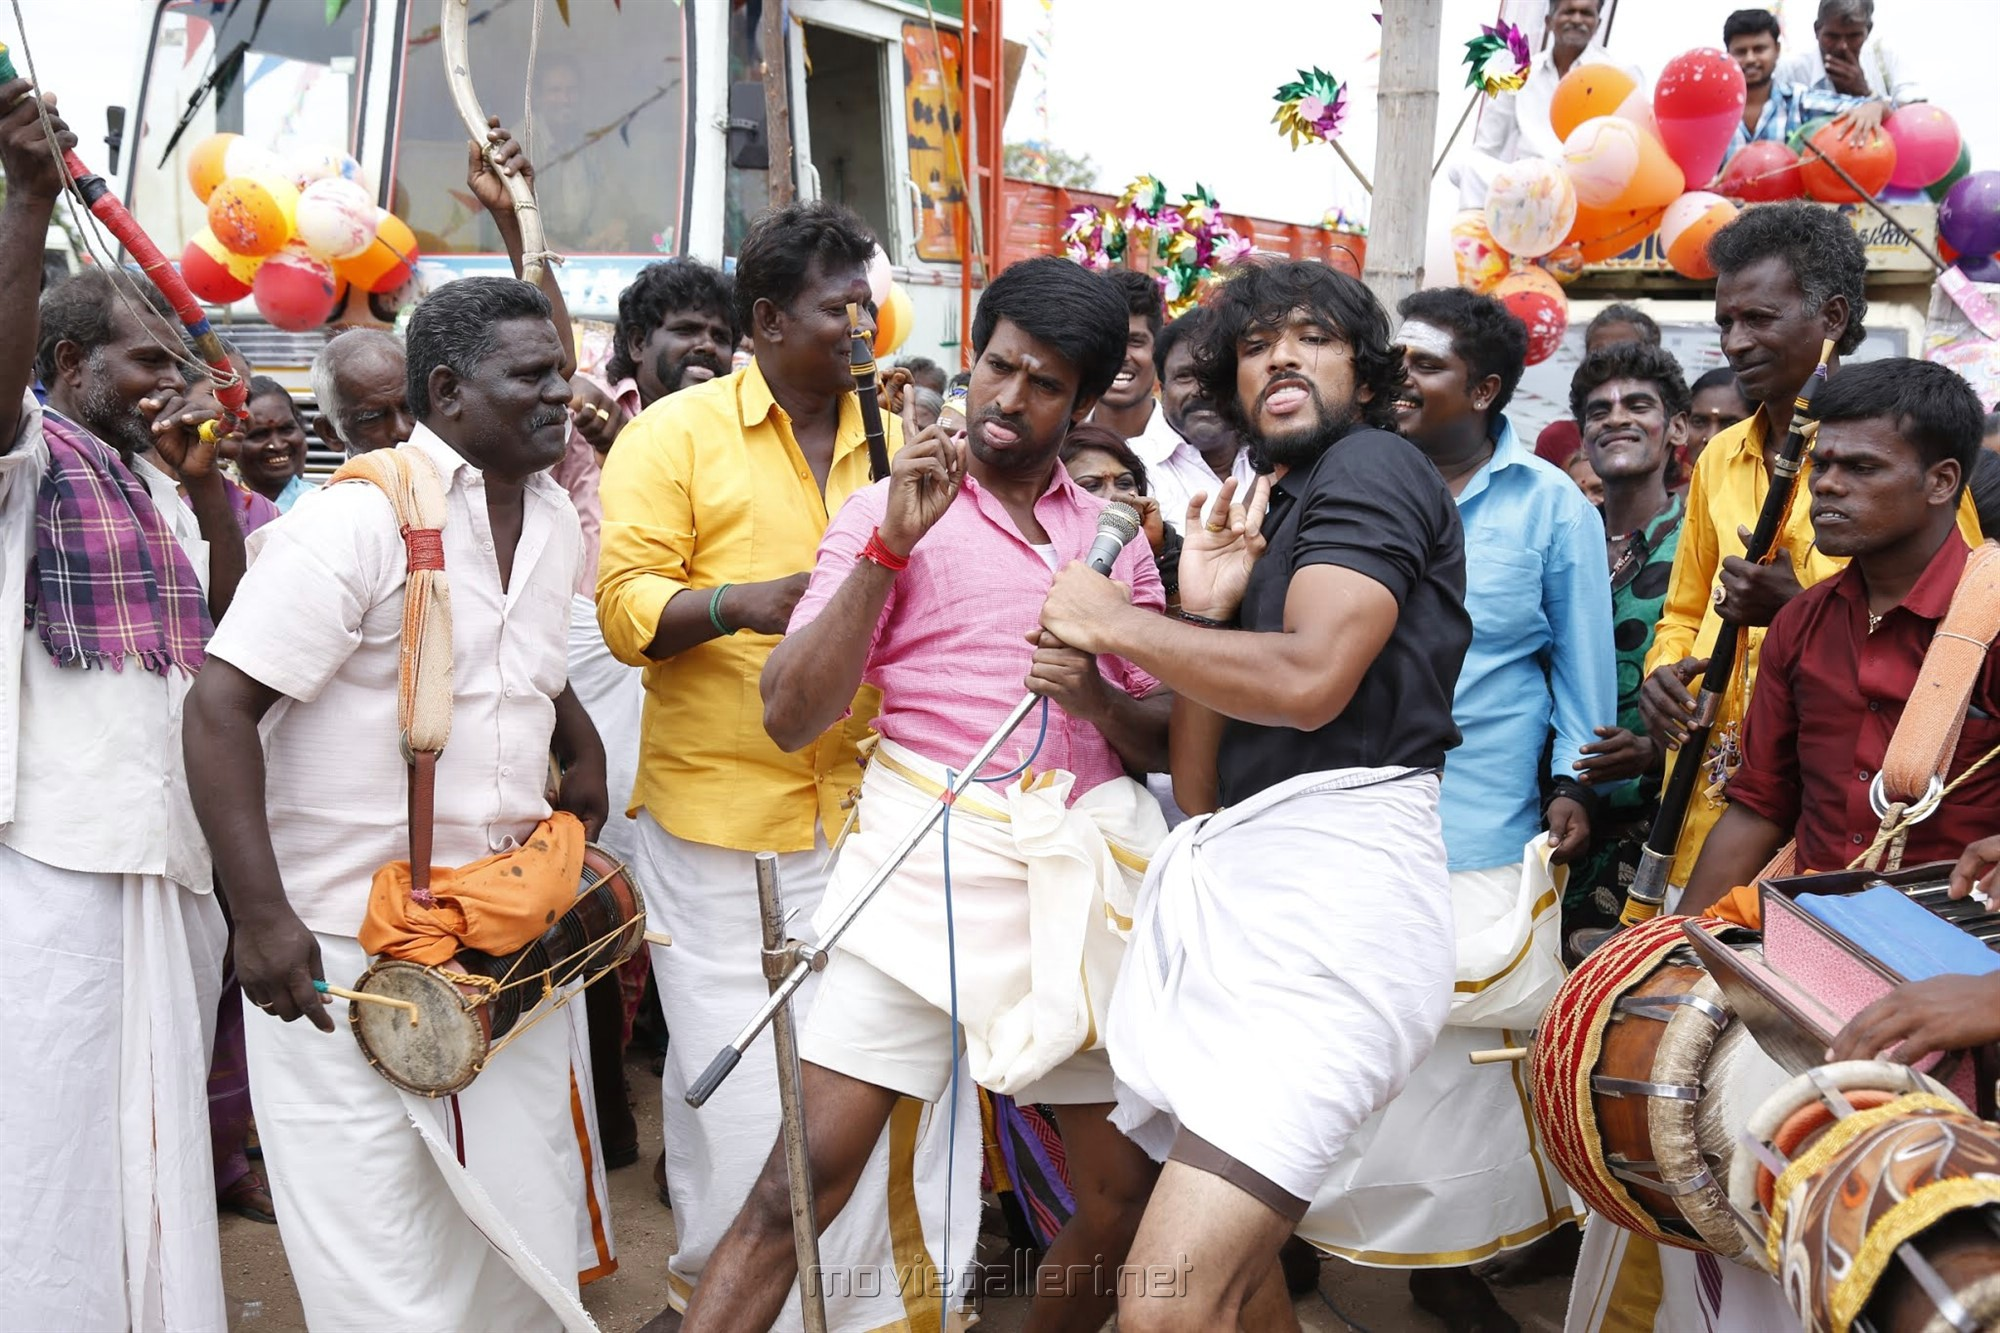 Soori, Gautham Karthik in Devarattam Movie Images HD